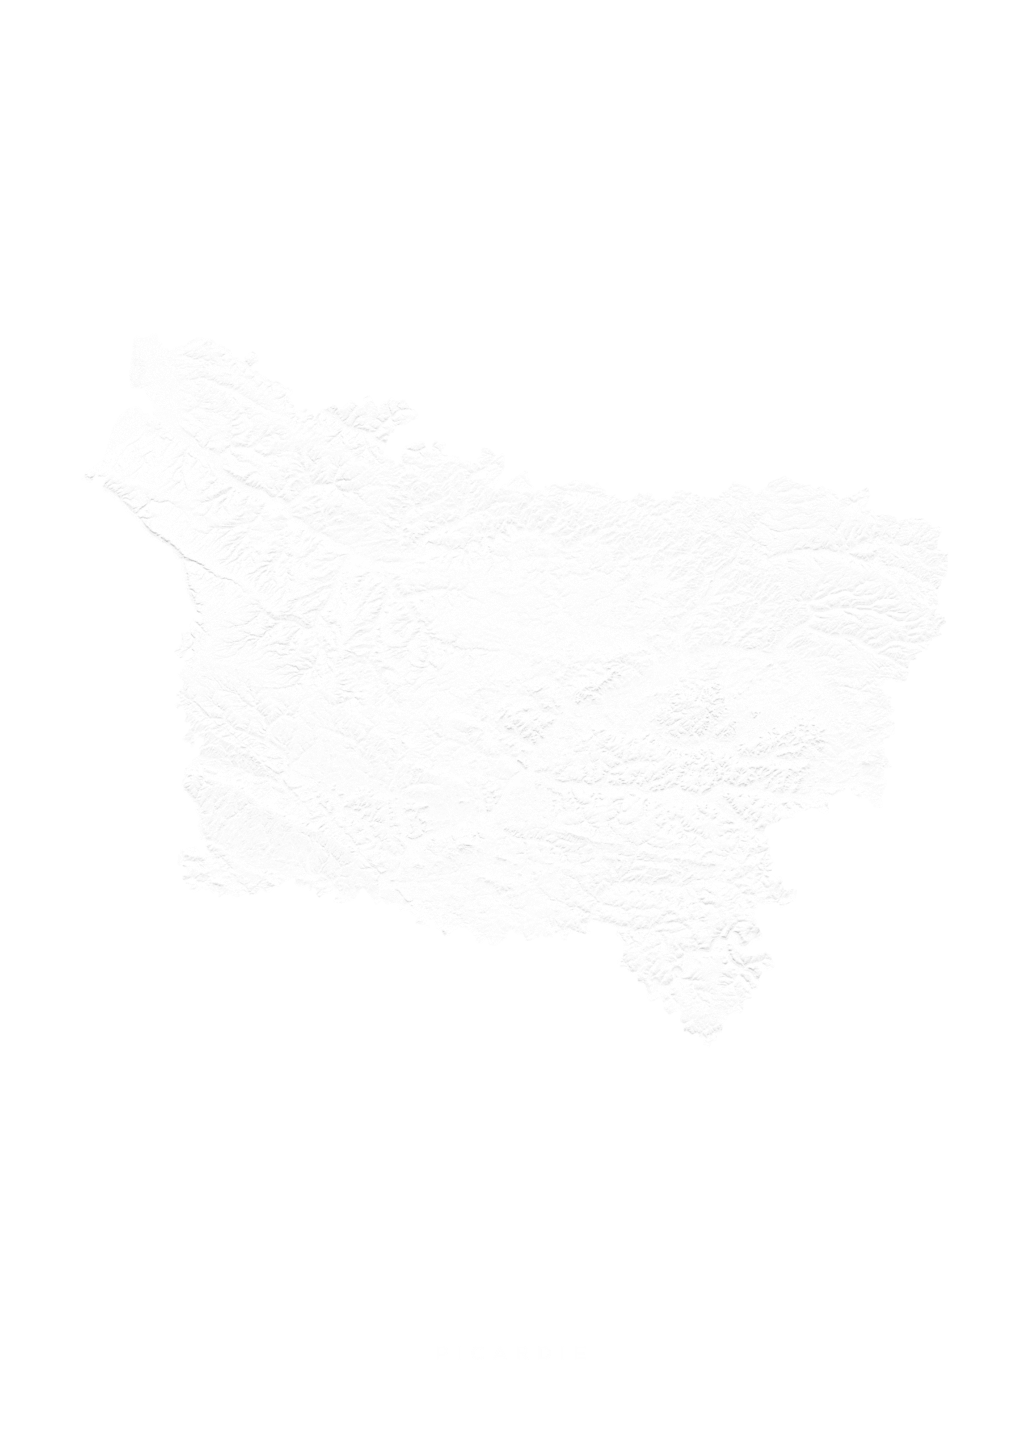 Picardie wall map